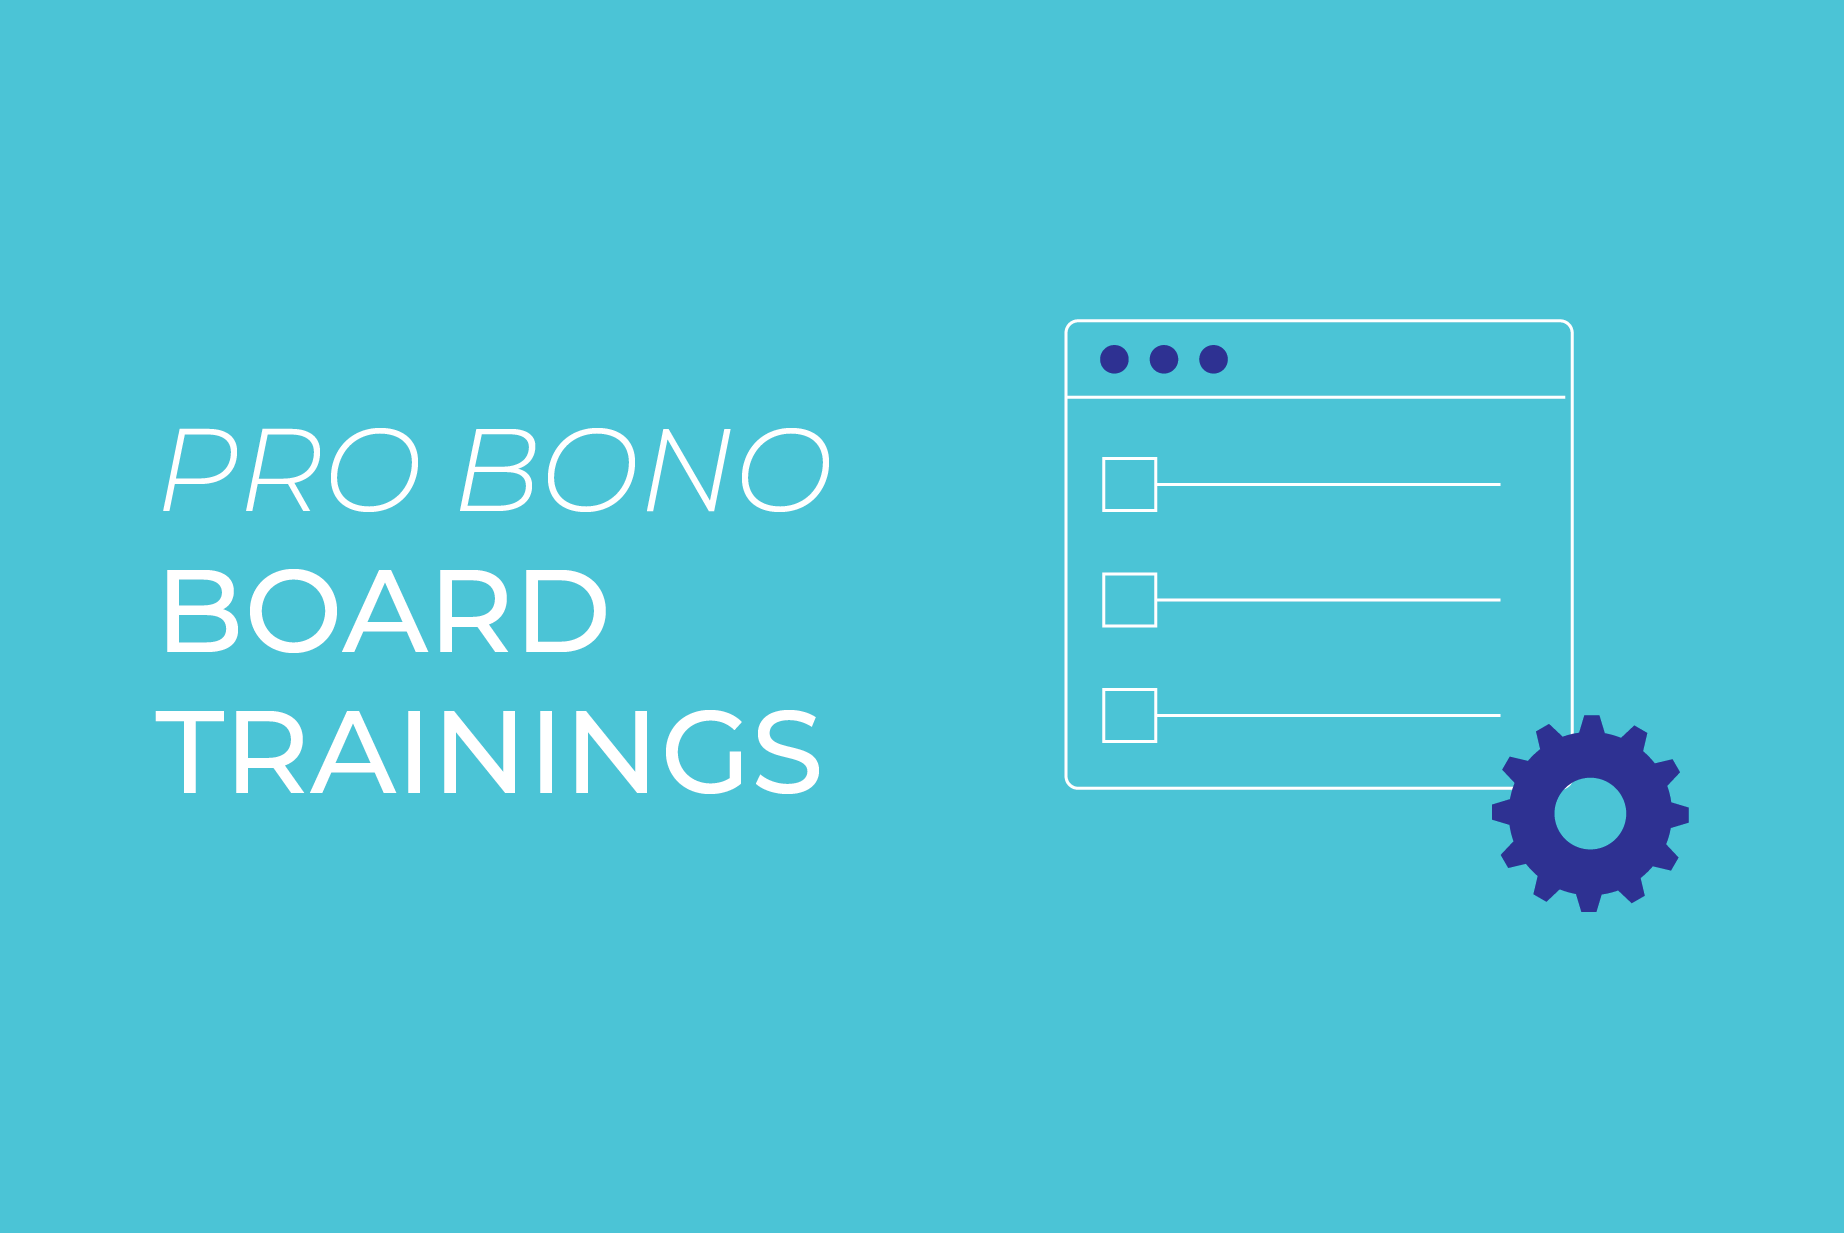 PRO BONO BOARD TRAININGS